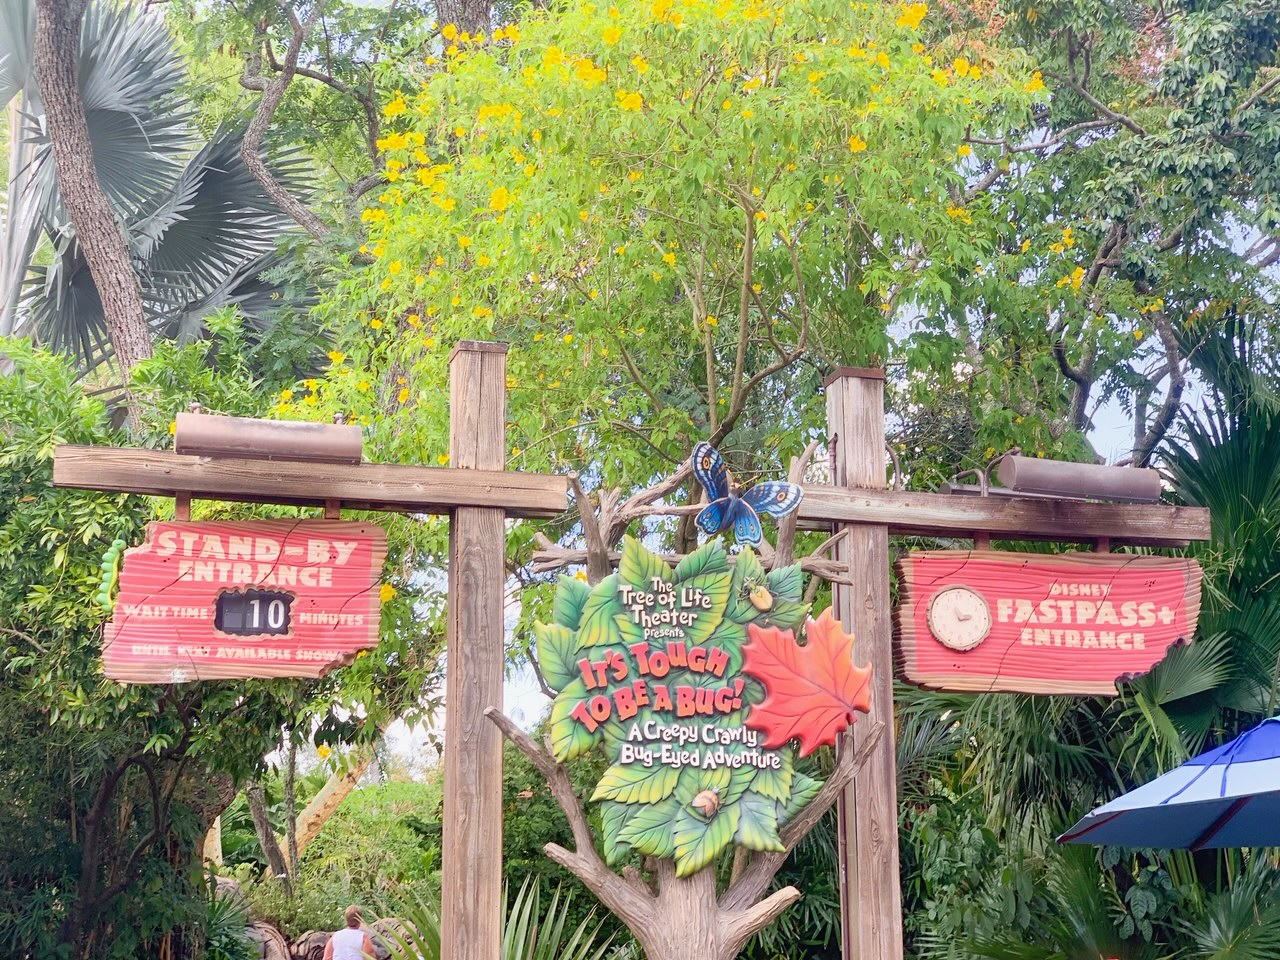 it's tough to be a bug at animal kingdom park